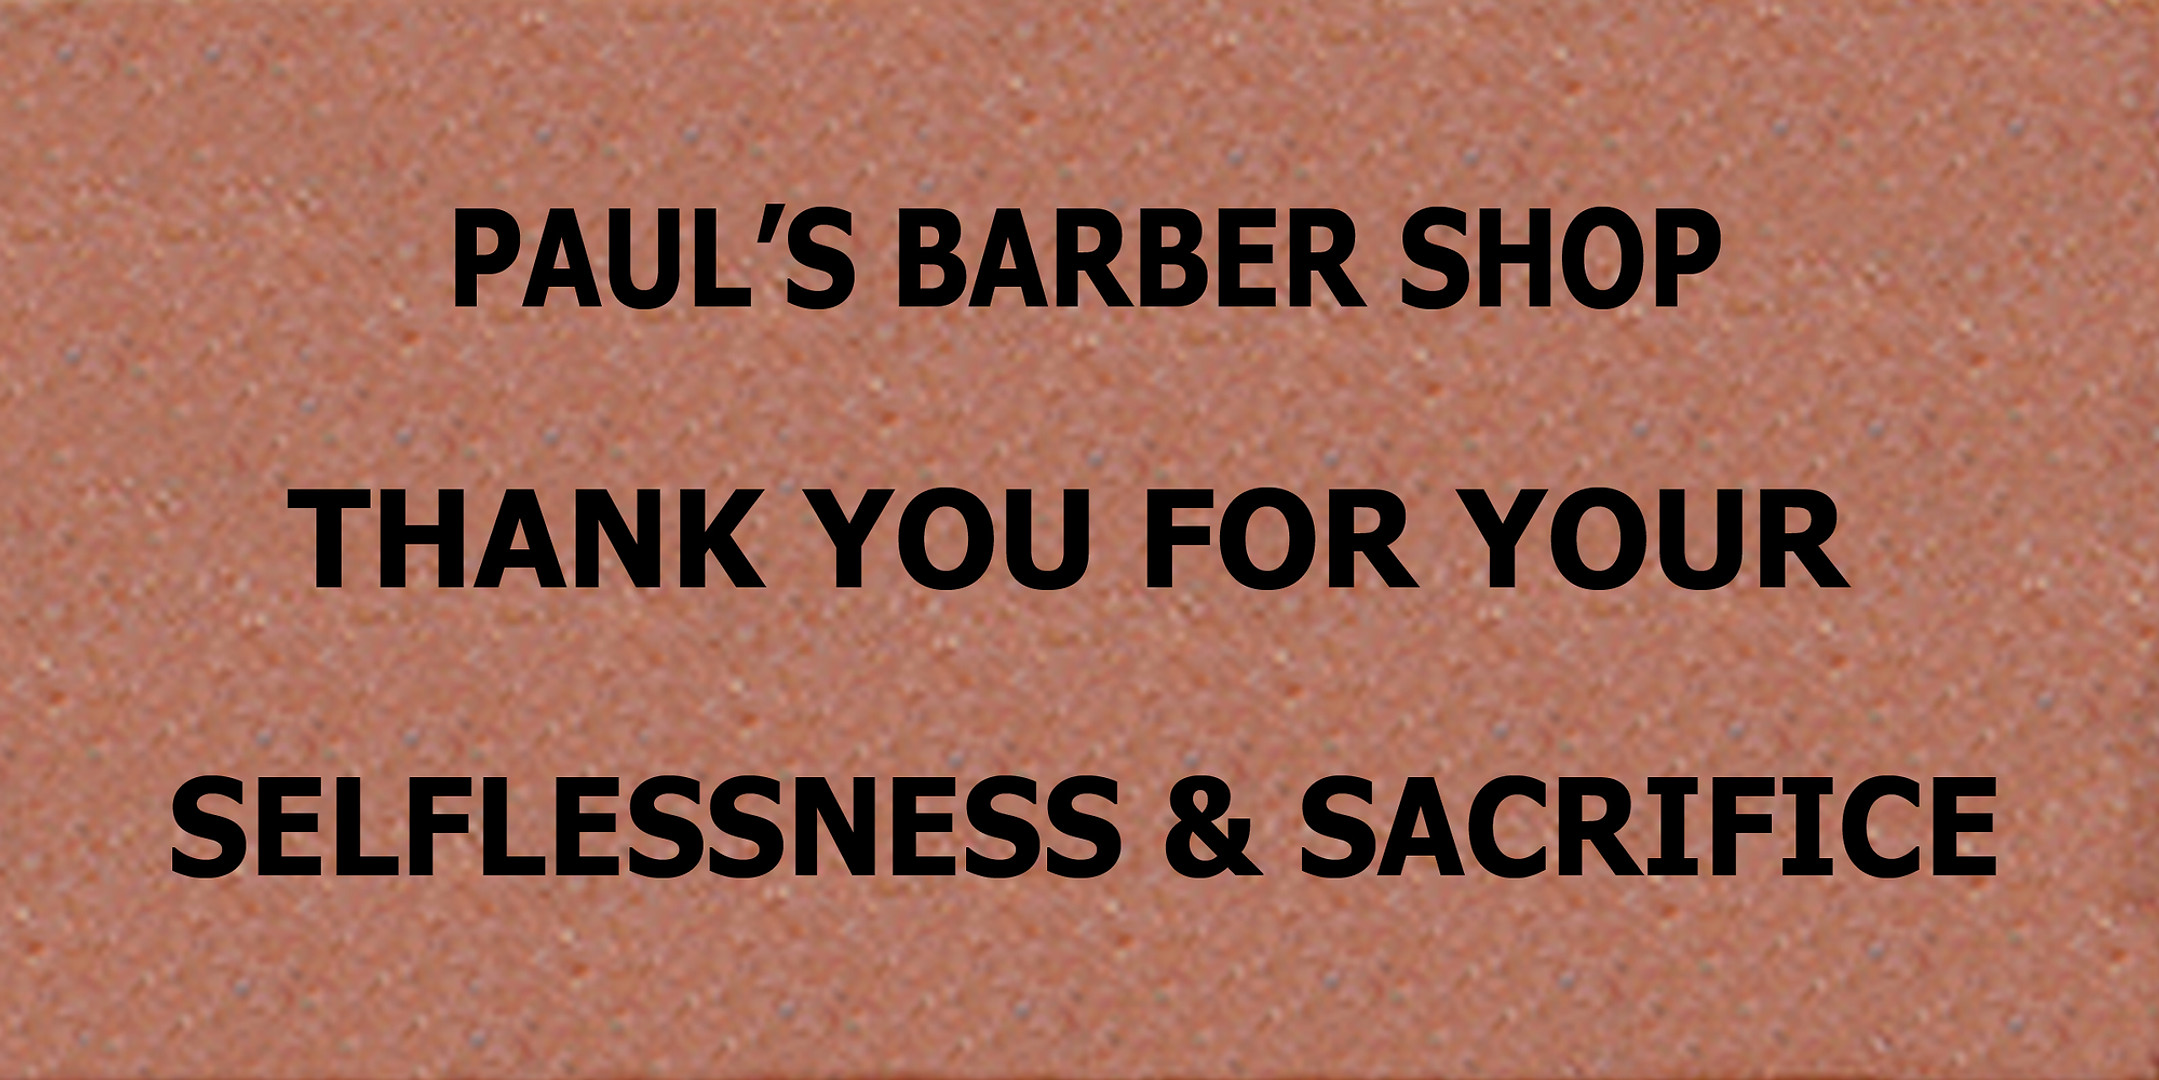 Brick #10 Paul's Barber Shop.jpg